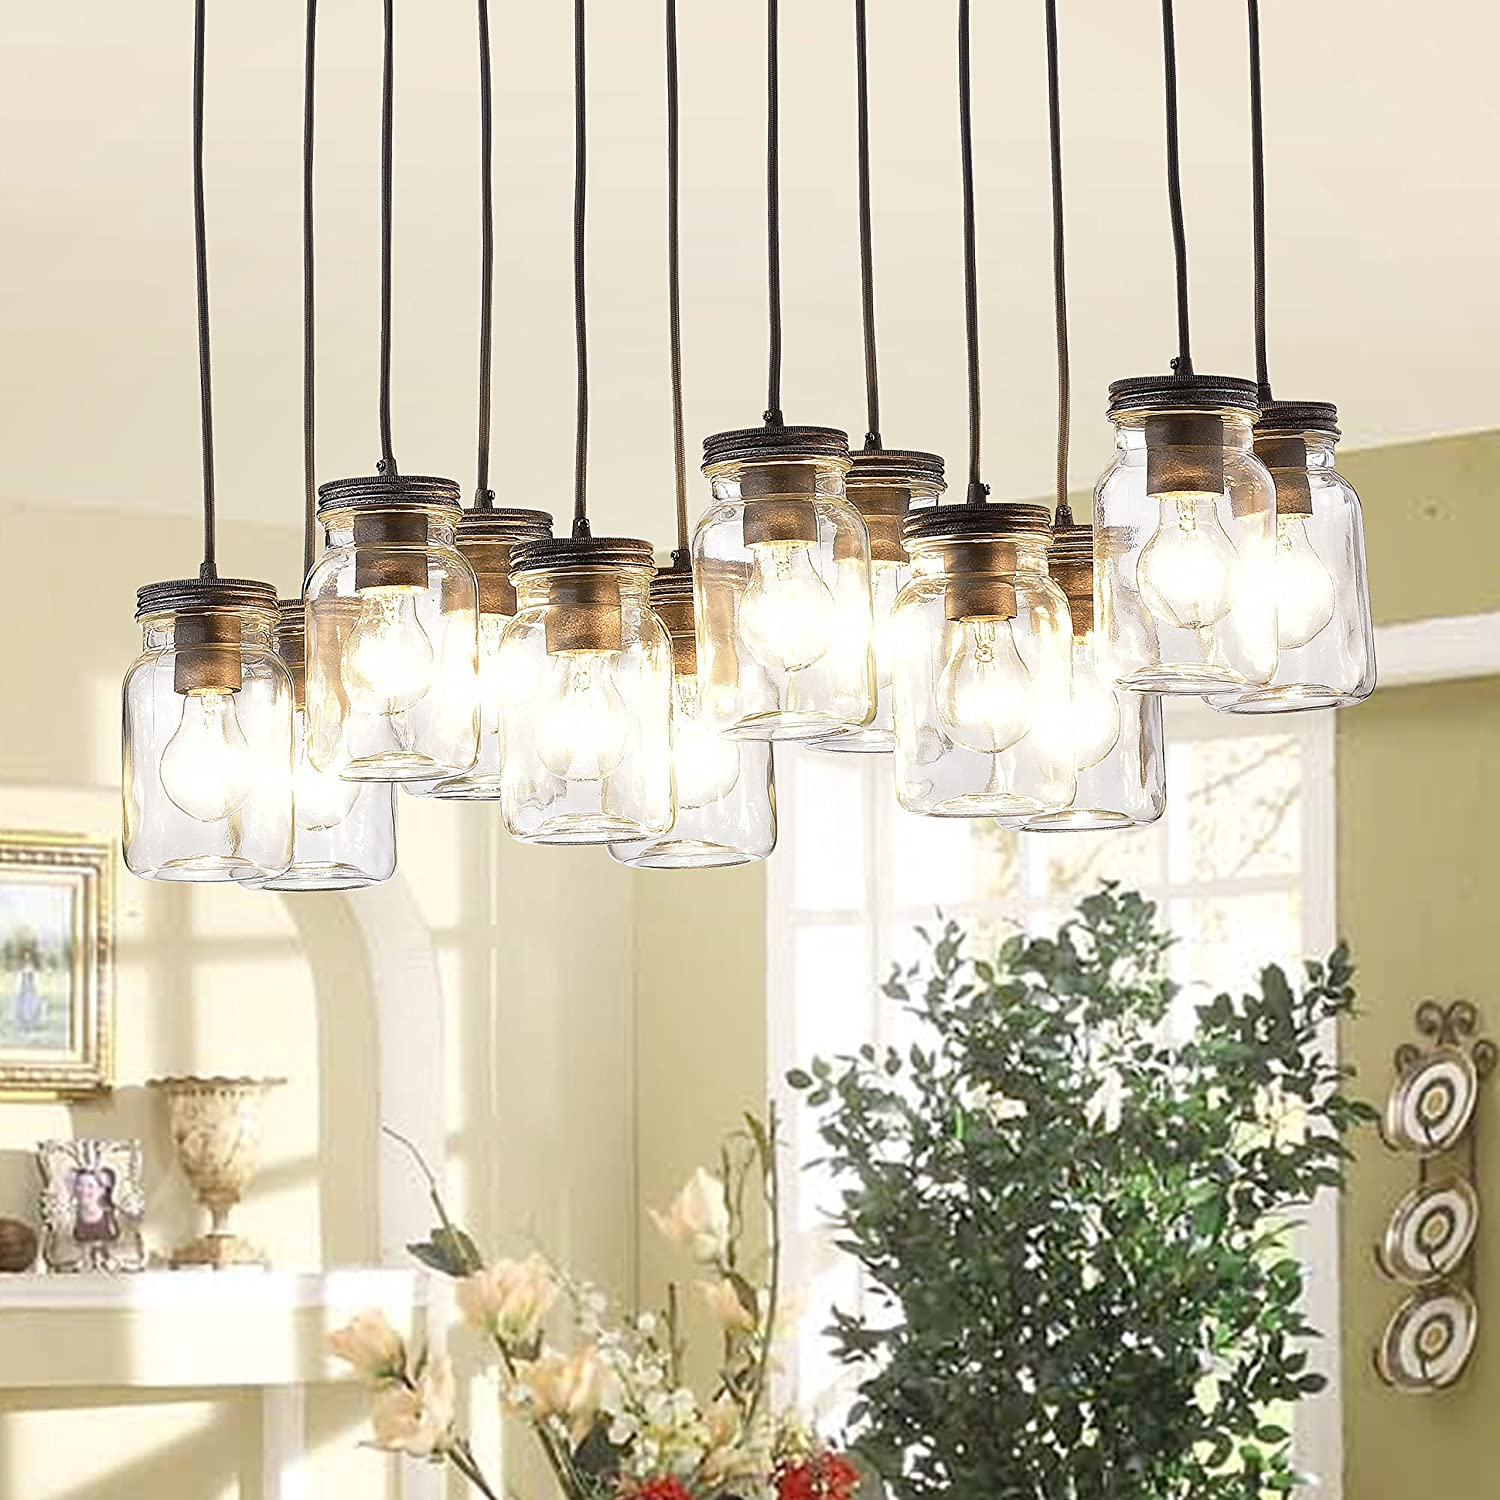 Jojospring Belinda 12 Light Clear Glass Canning Jar Pendant How To Install A Chandelier And Dimmer Switch Apps Directories